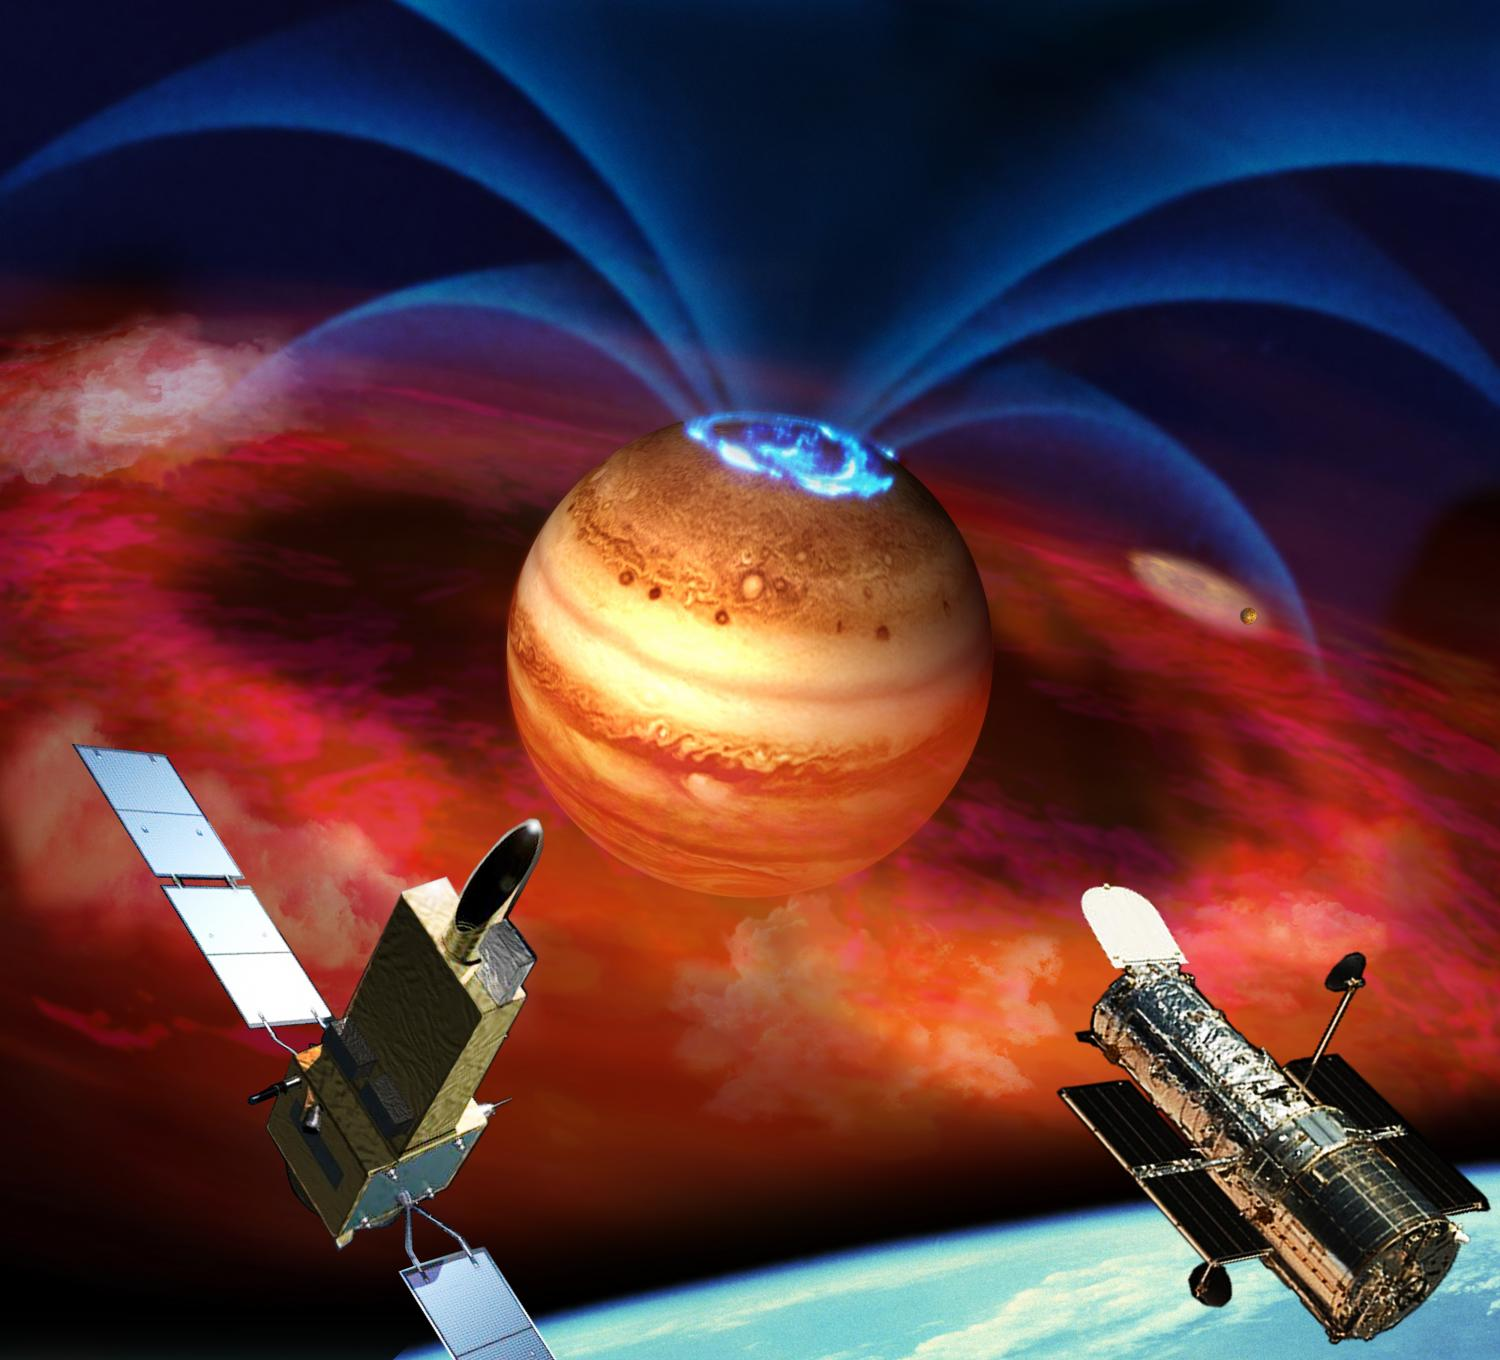 ... OF JUPITER'S AURORA LINKED TO EXTRAORDINARY PLANET-MOON INTERACTION